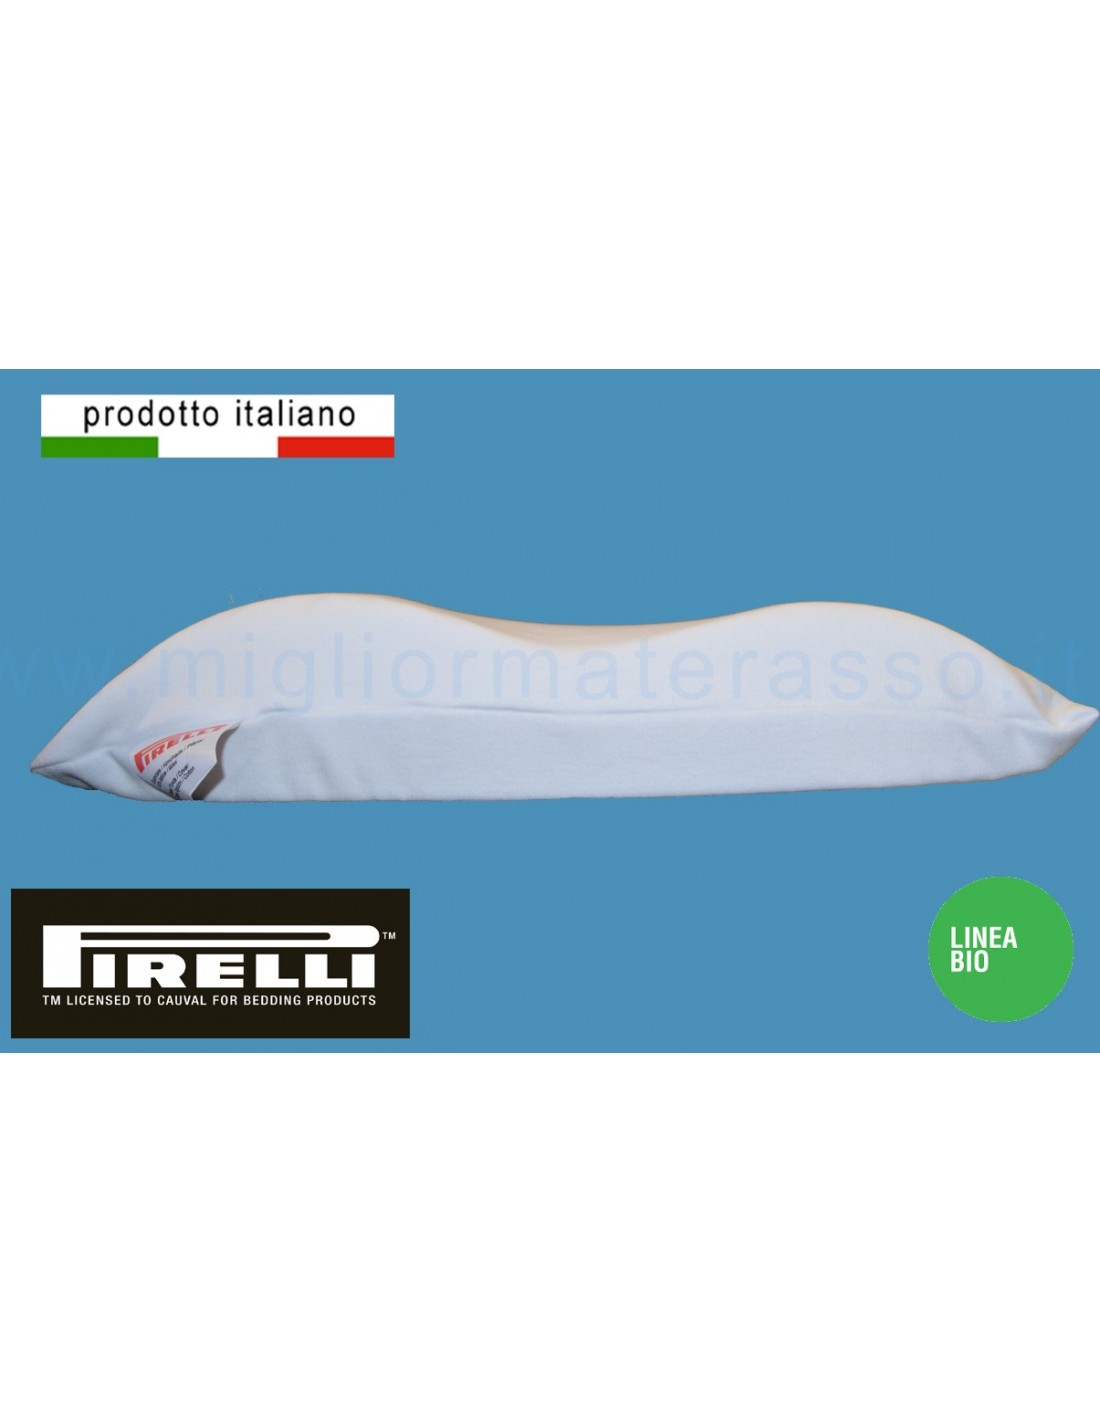 Cuscino Pirelli Bedding.Latex Contour Pillow Pirelli Made In Italy